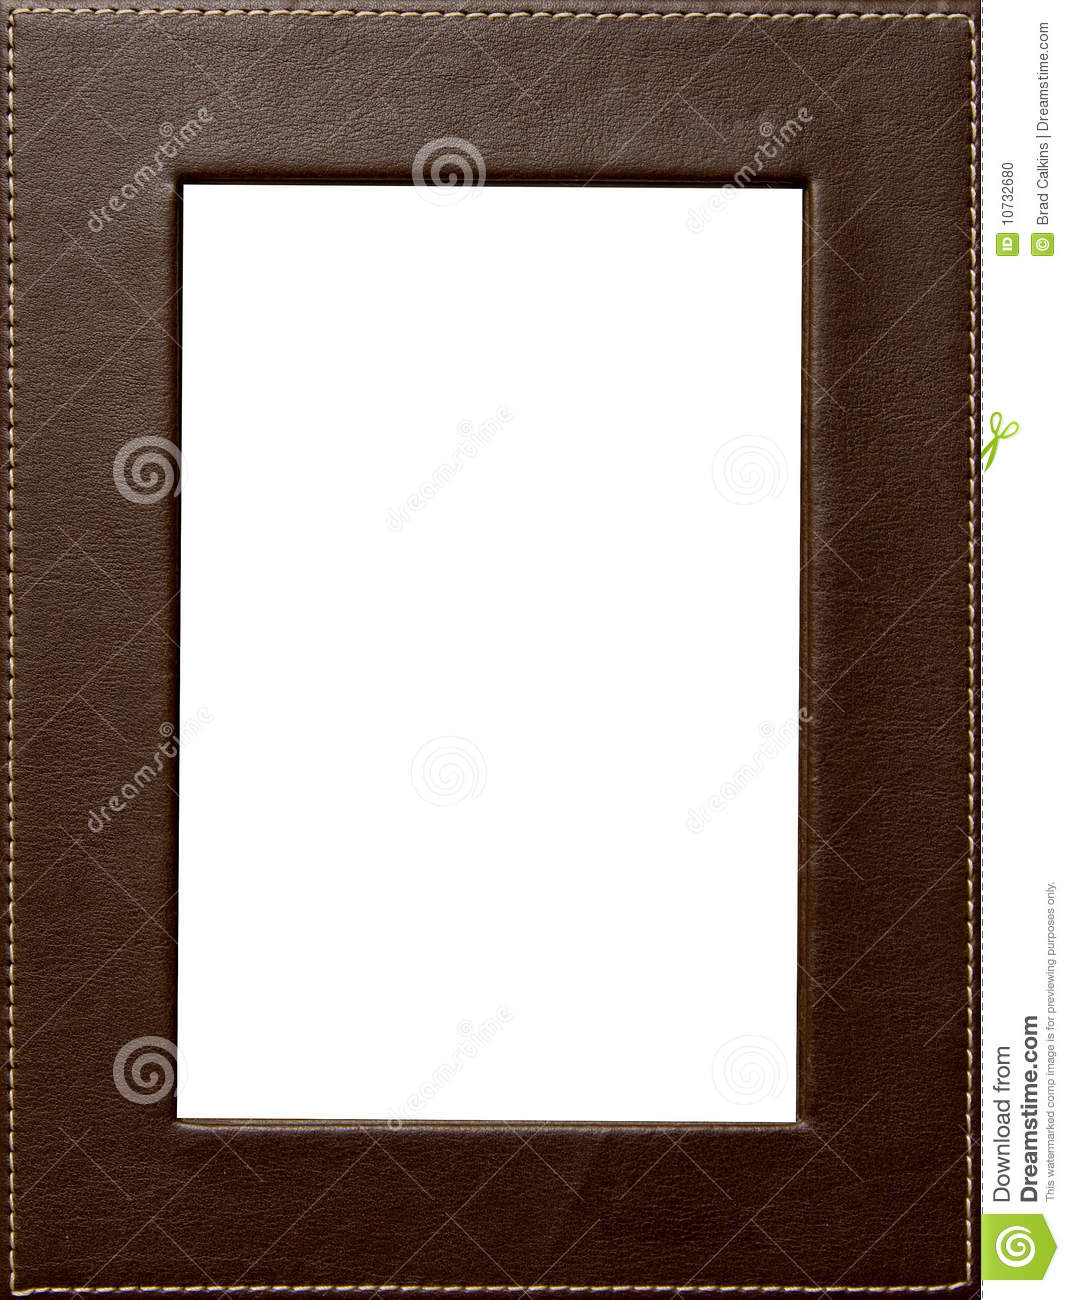 Leather Frame Stock Photo 10732680 - Megapixl